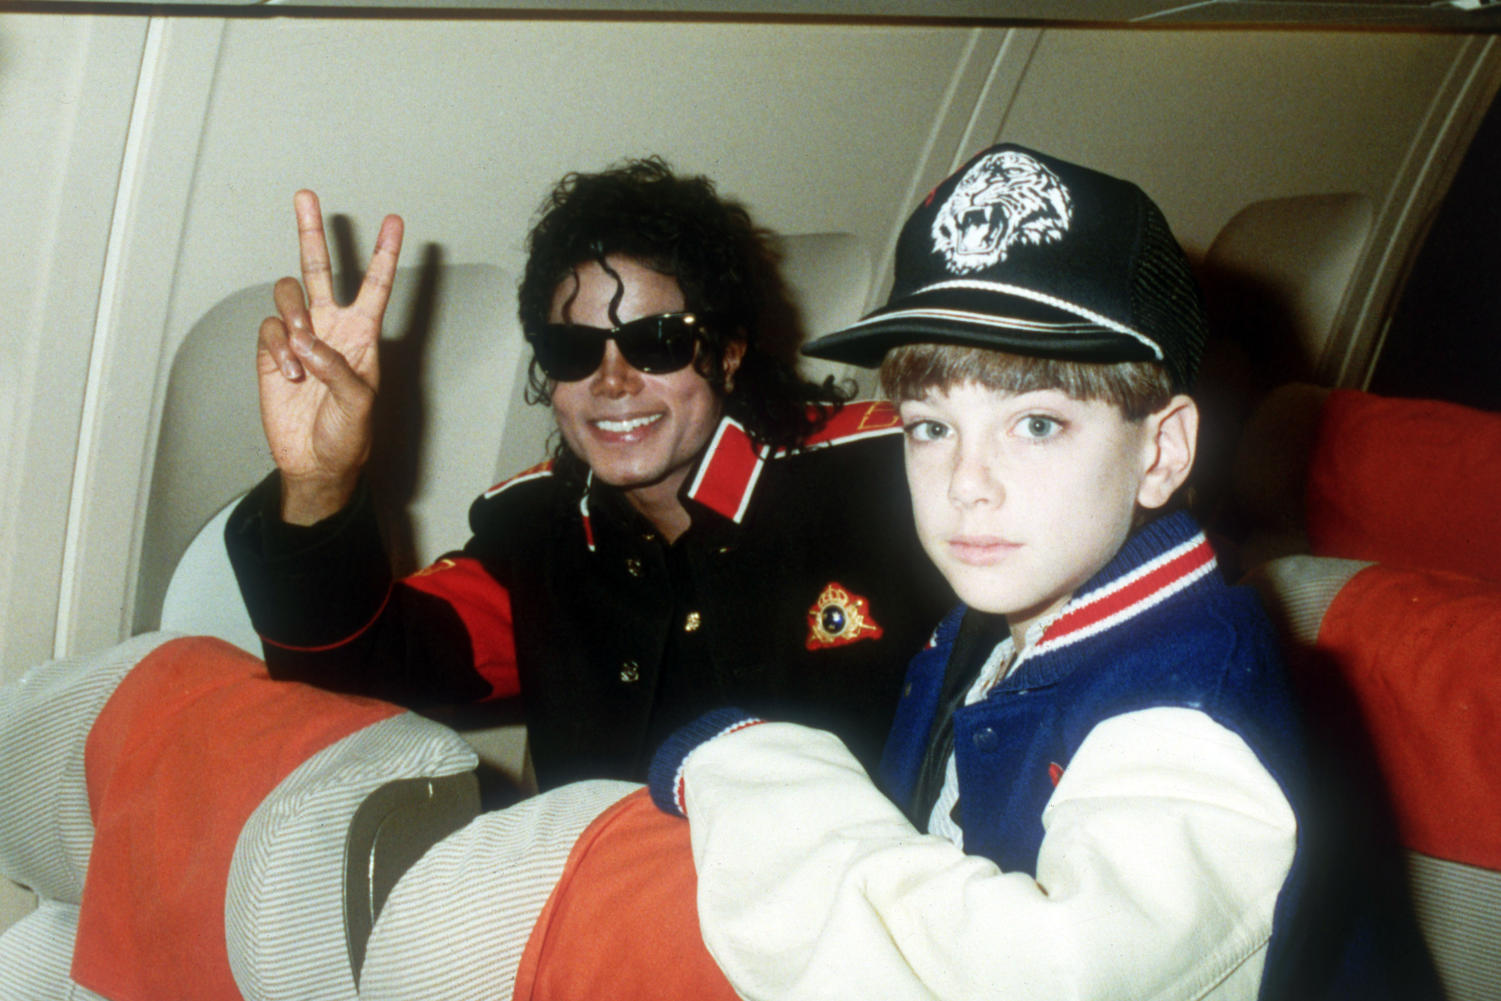 Michael Jackson pictured with alleged victim James Safechuck, an eleven year old.